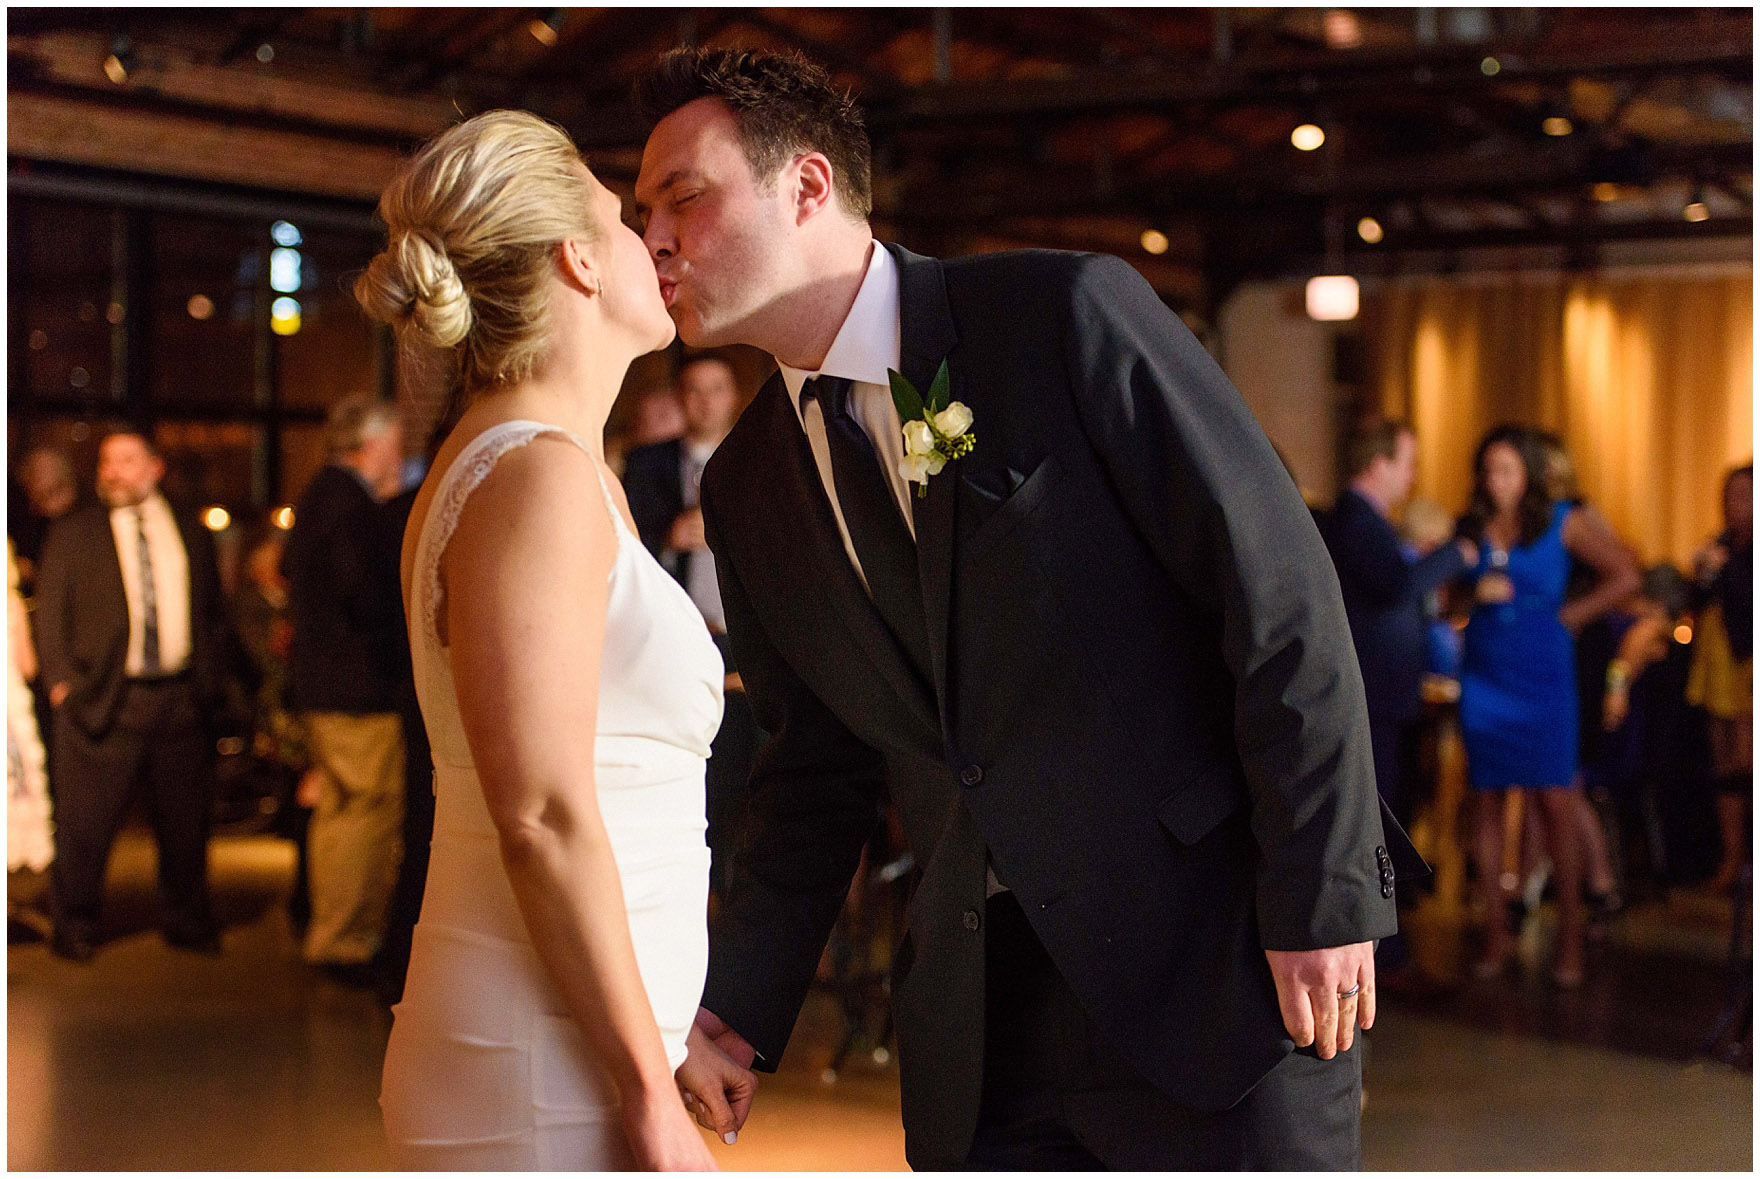 A bride and groom kiss on the dancefloor during an Ovation Chicago wedding.